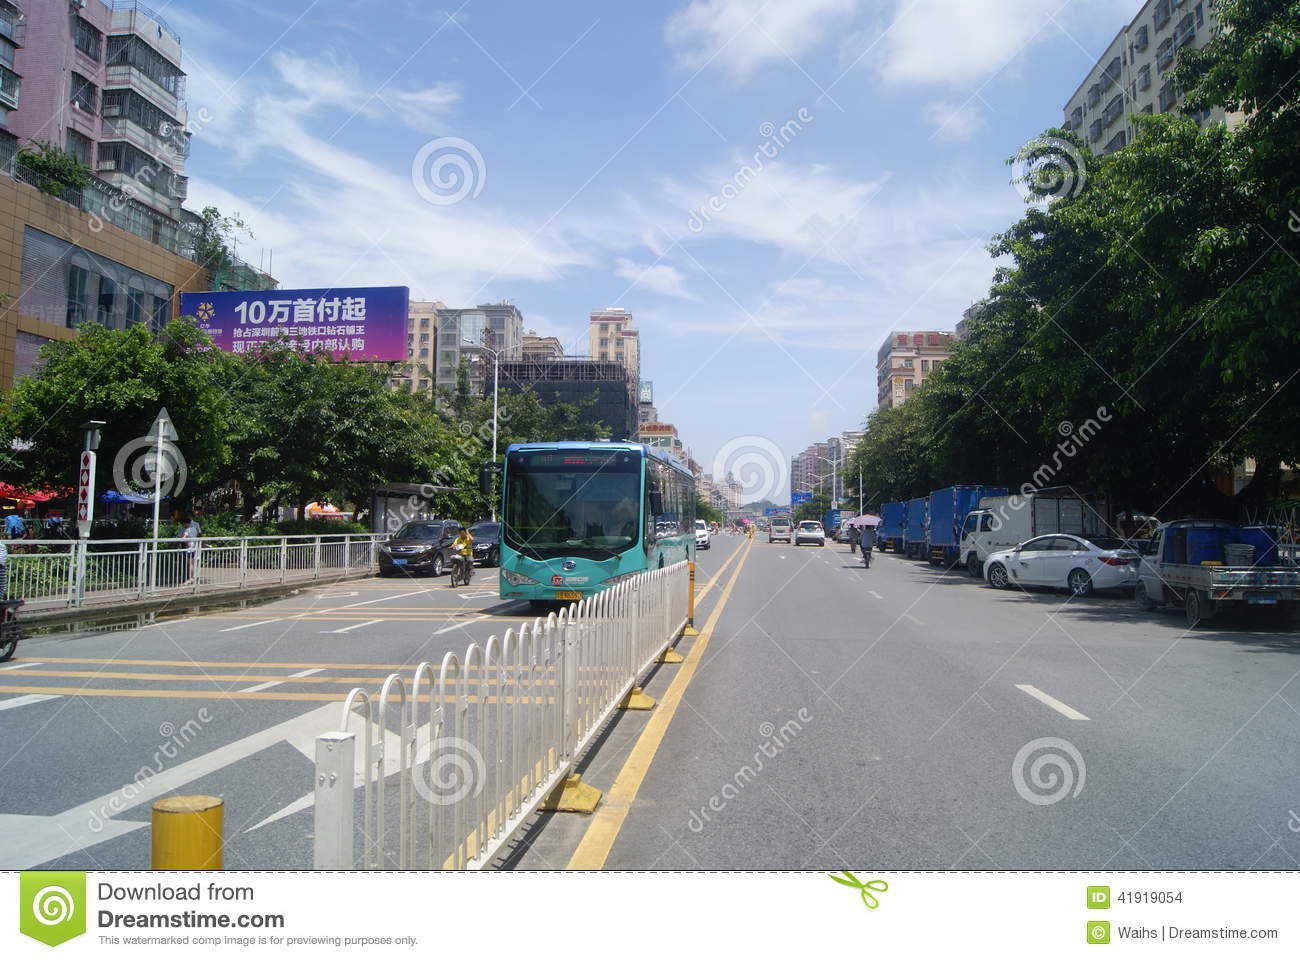 Shenzhen, chino: Tráfico de City Road